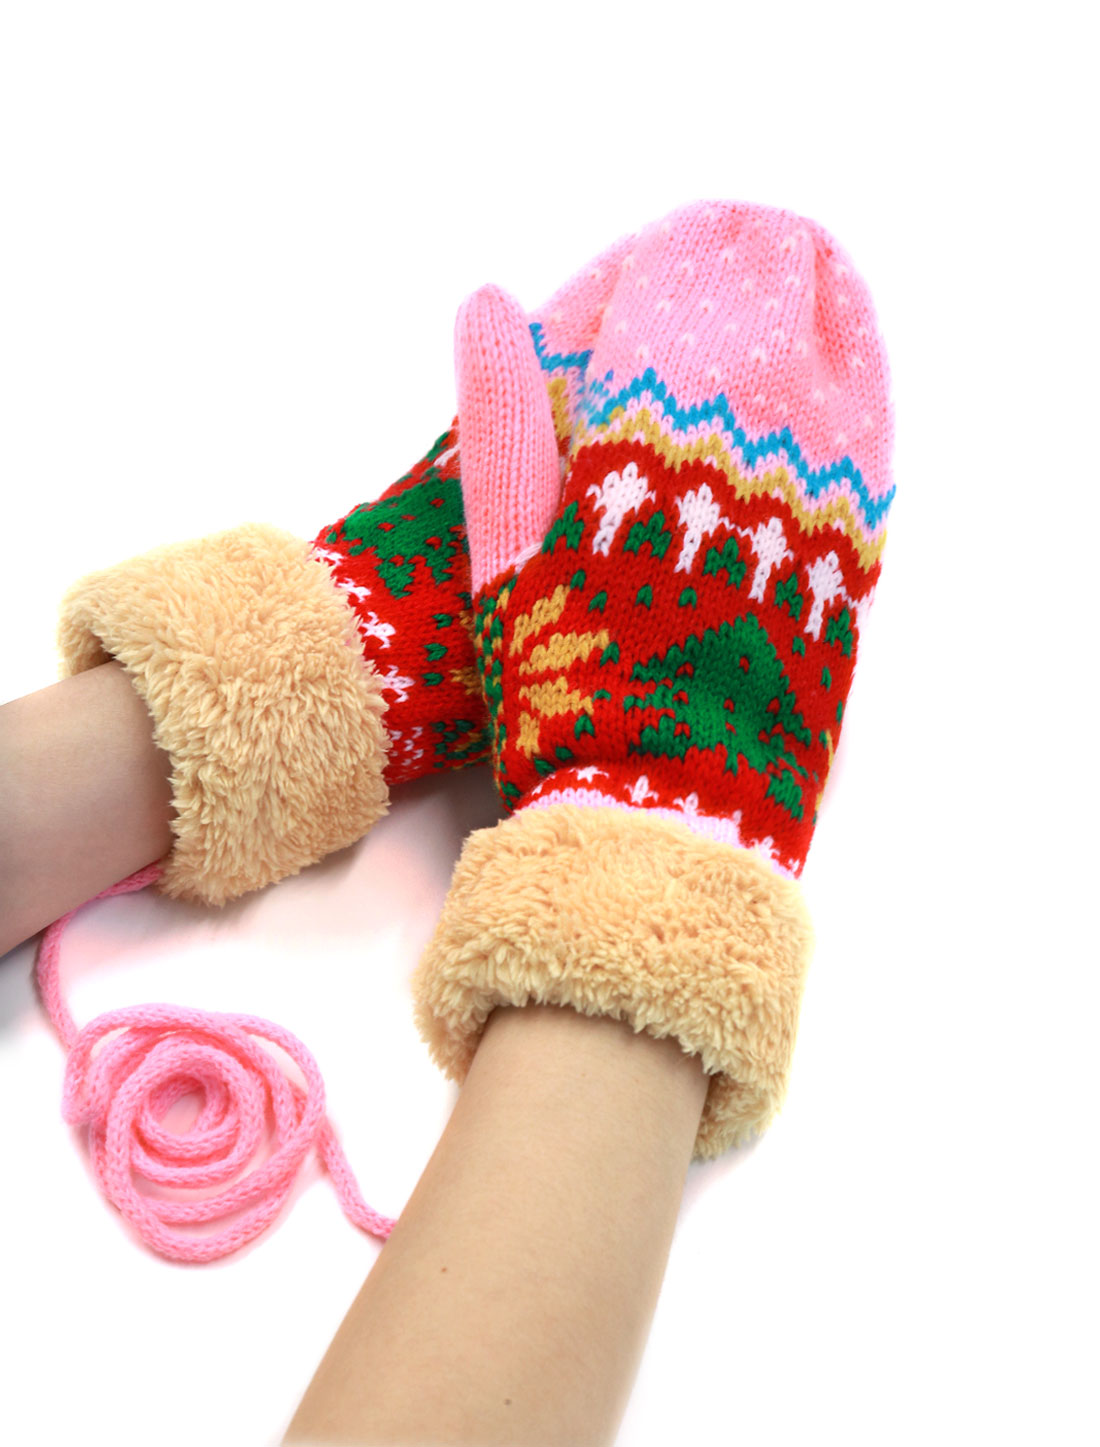 Ladies Plush Panel Wrist Length Christmas Tree Pattern Mitten Gloves Pair Pink